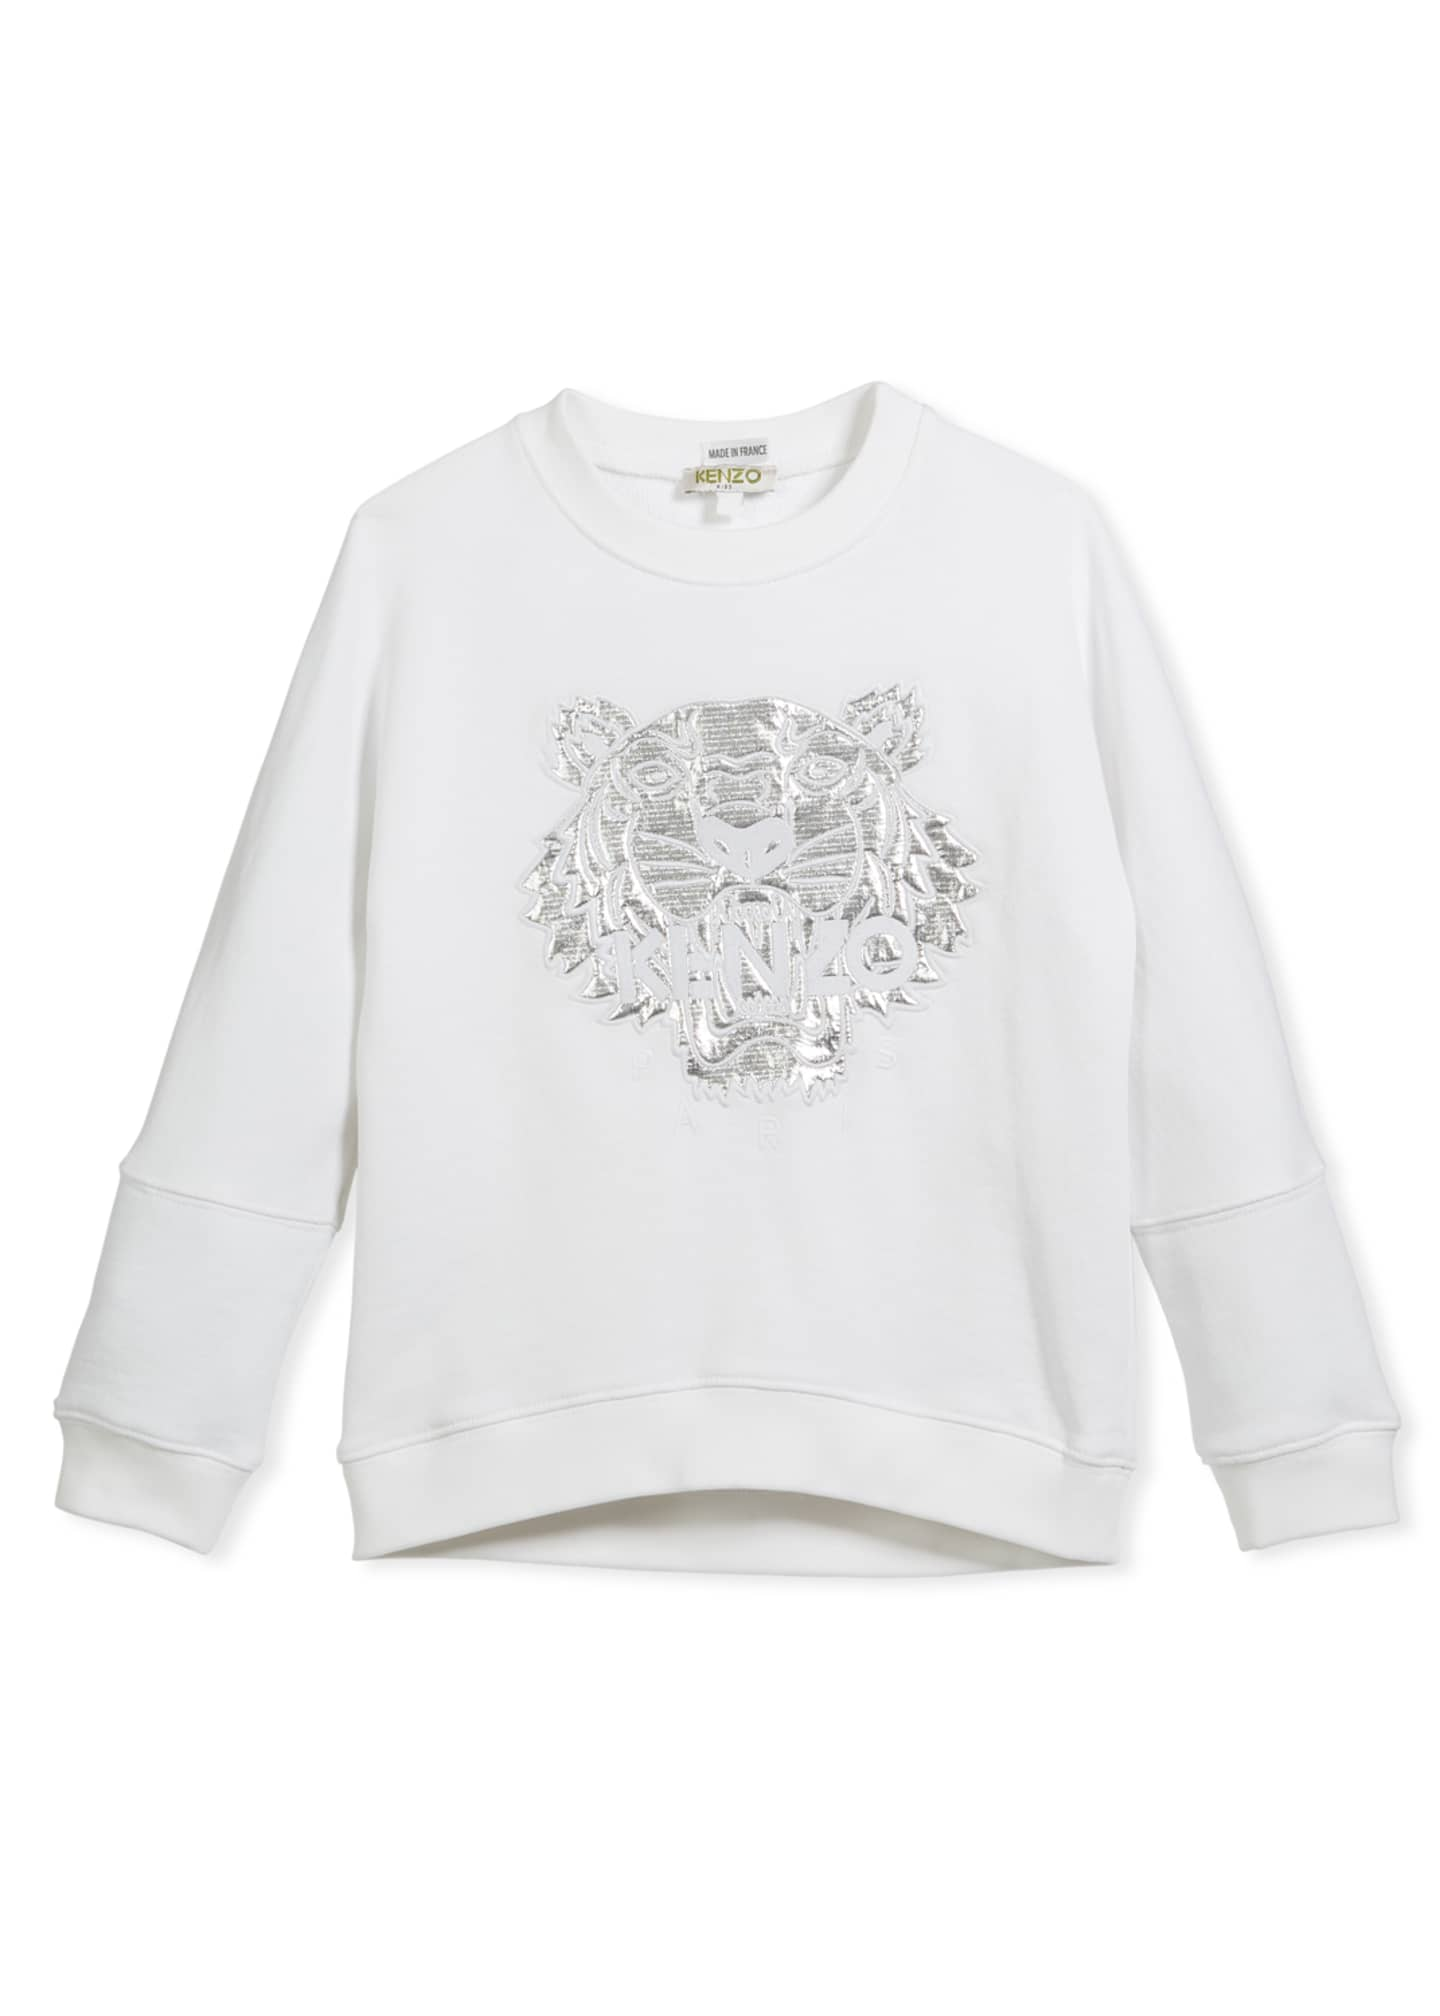 Kenzo Drop-Shoulder Sweatshirt w/ Metallic Tiger Face, White,